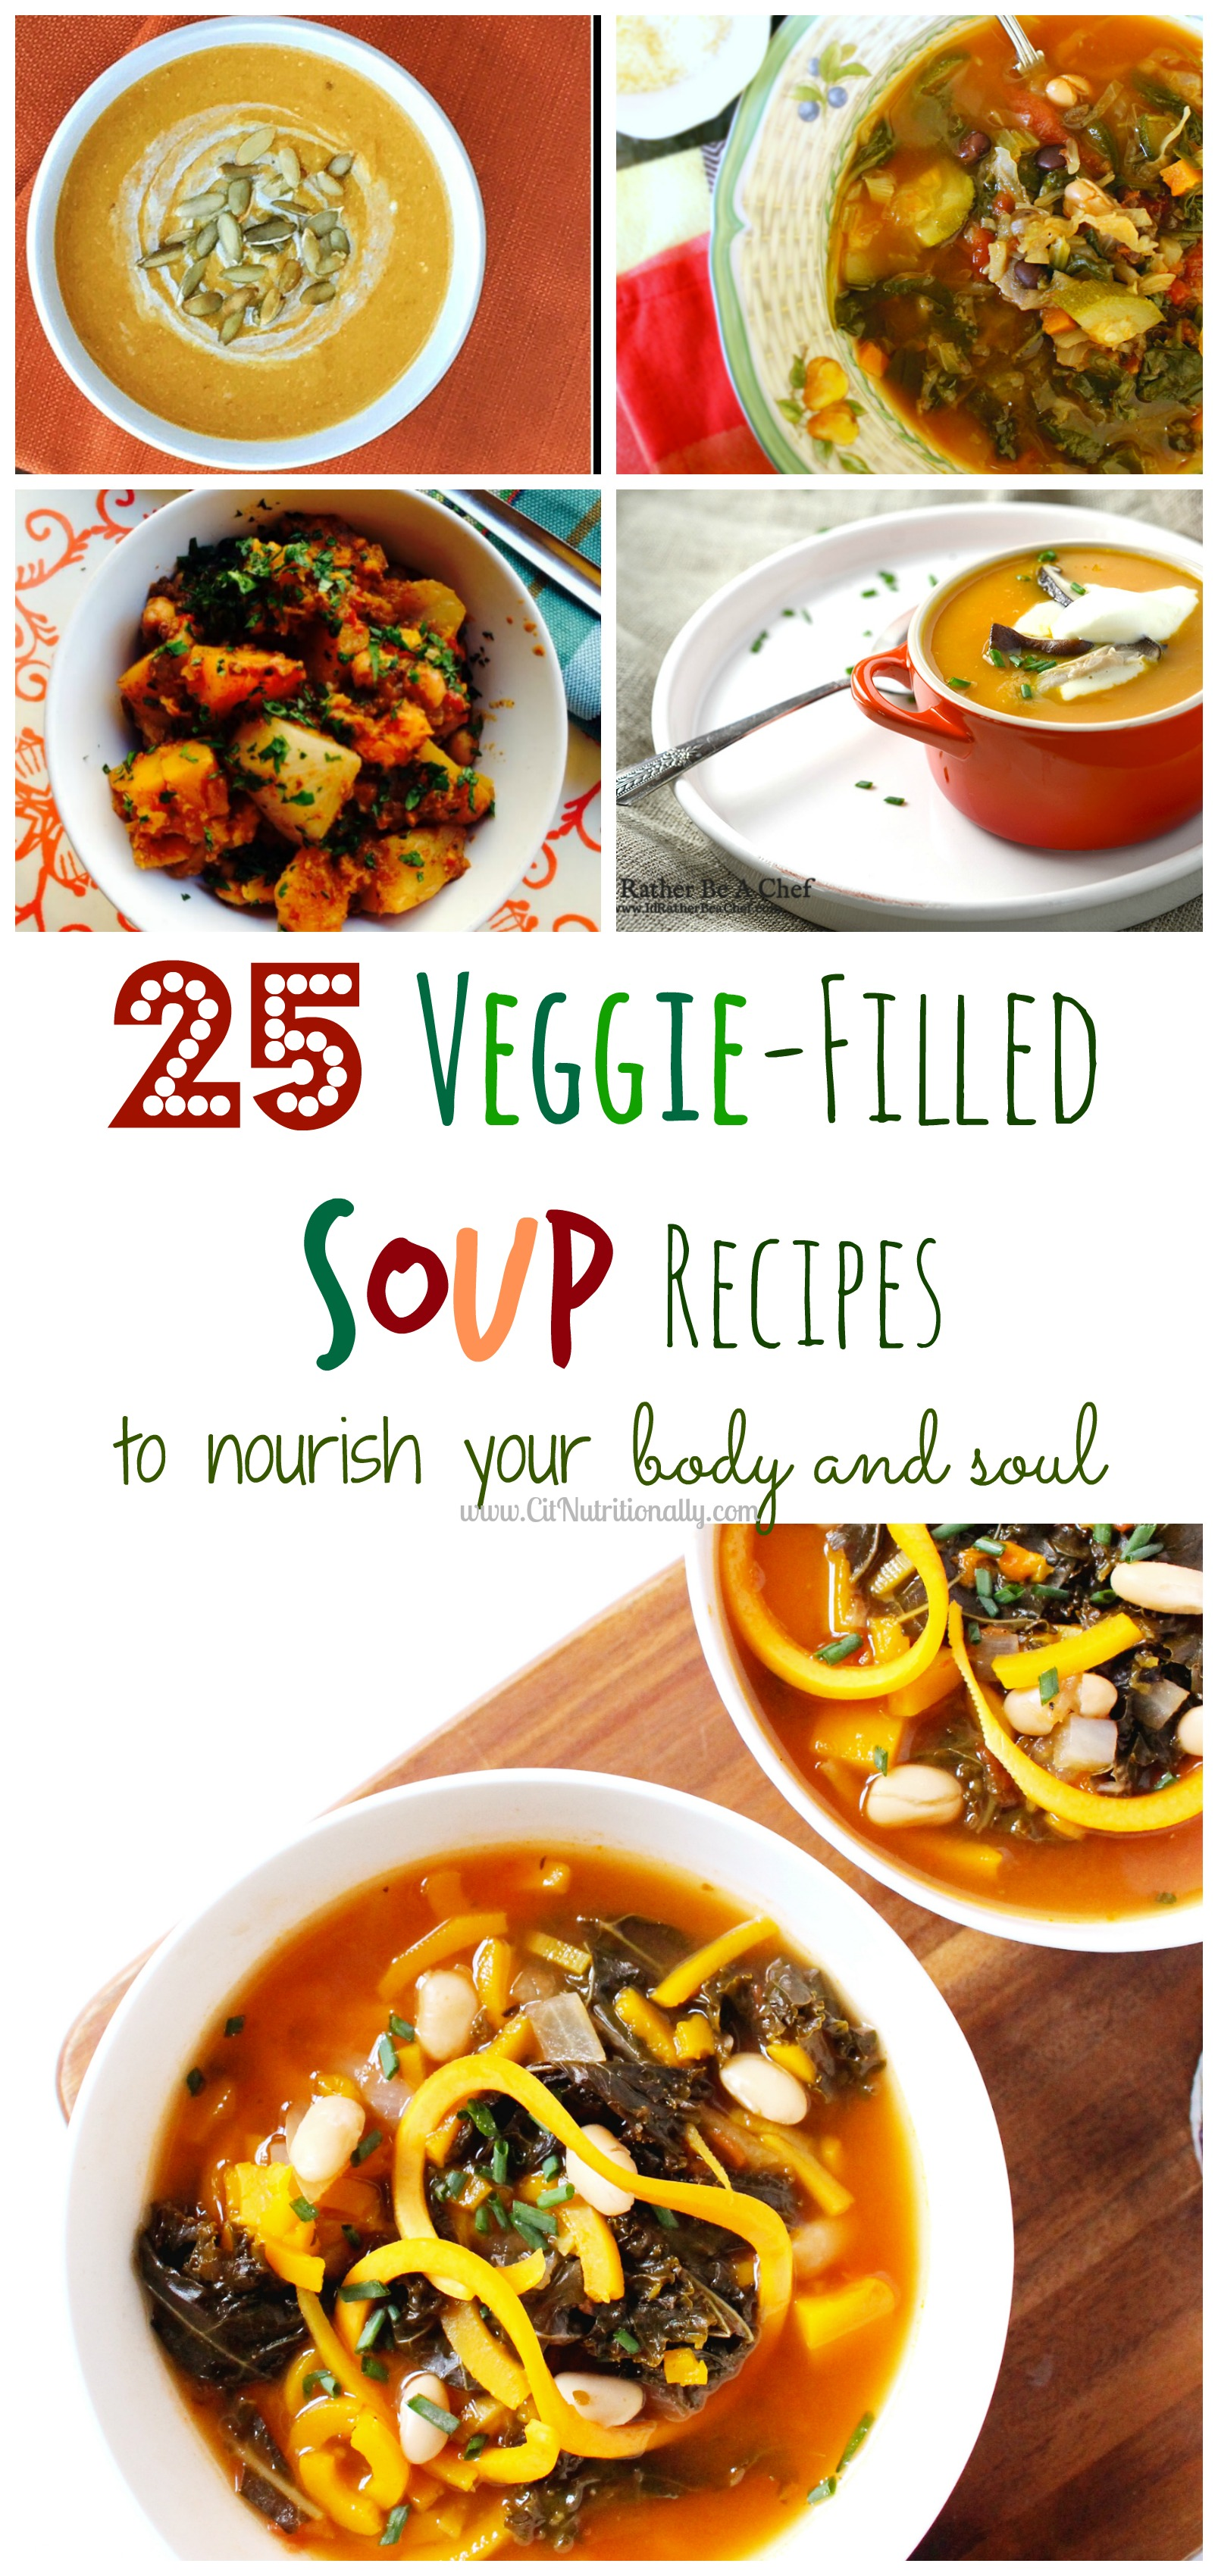 25 veggie filled soup recipes to nourish your body and soul c it 25 veggie filled soup recipes to nourish your body and soul c it nutritionally forumfinder Gallery